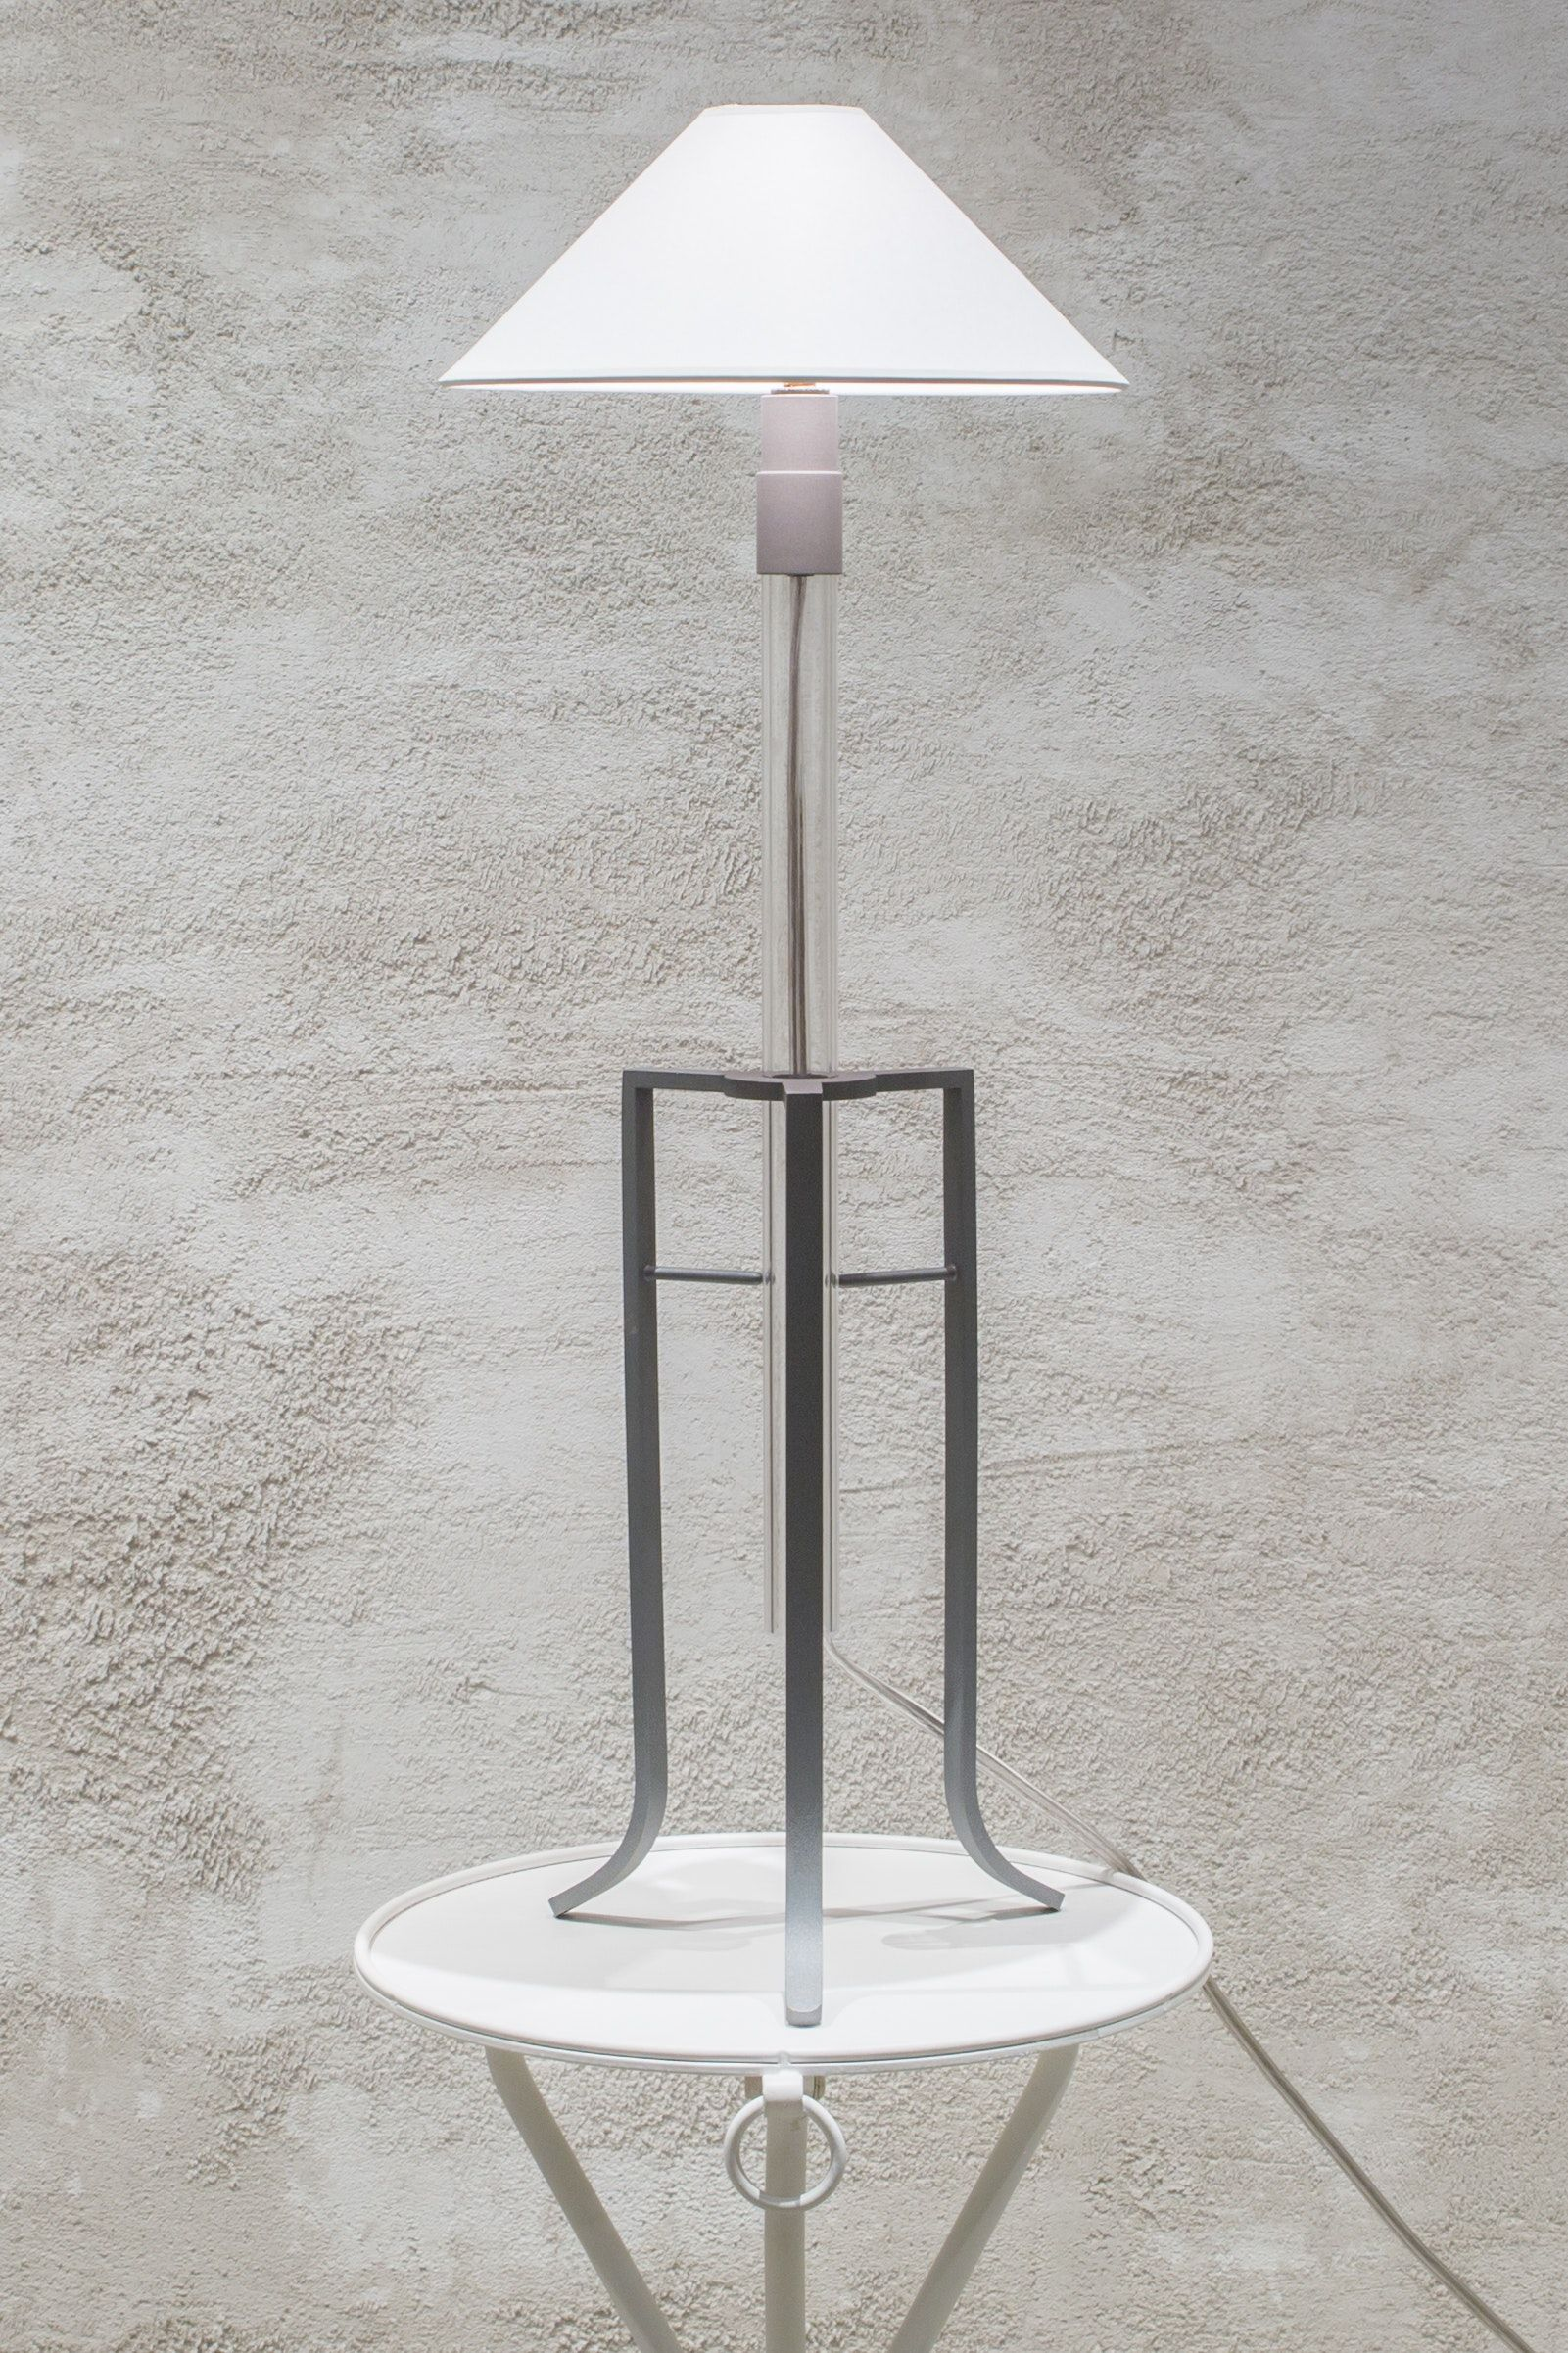 Buy The Tube Lamp ™ By Saladino Furniture Inc.   Made To Order